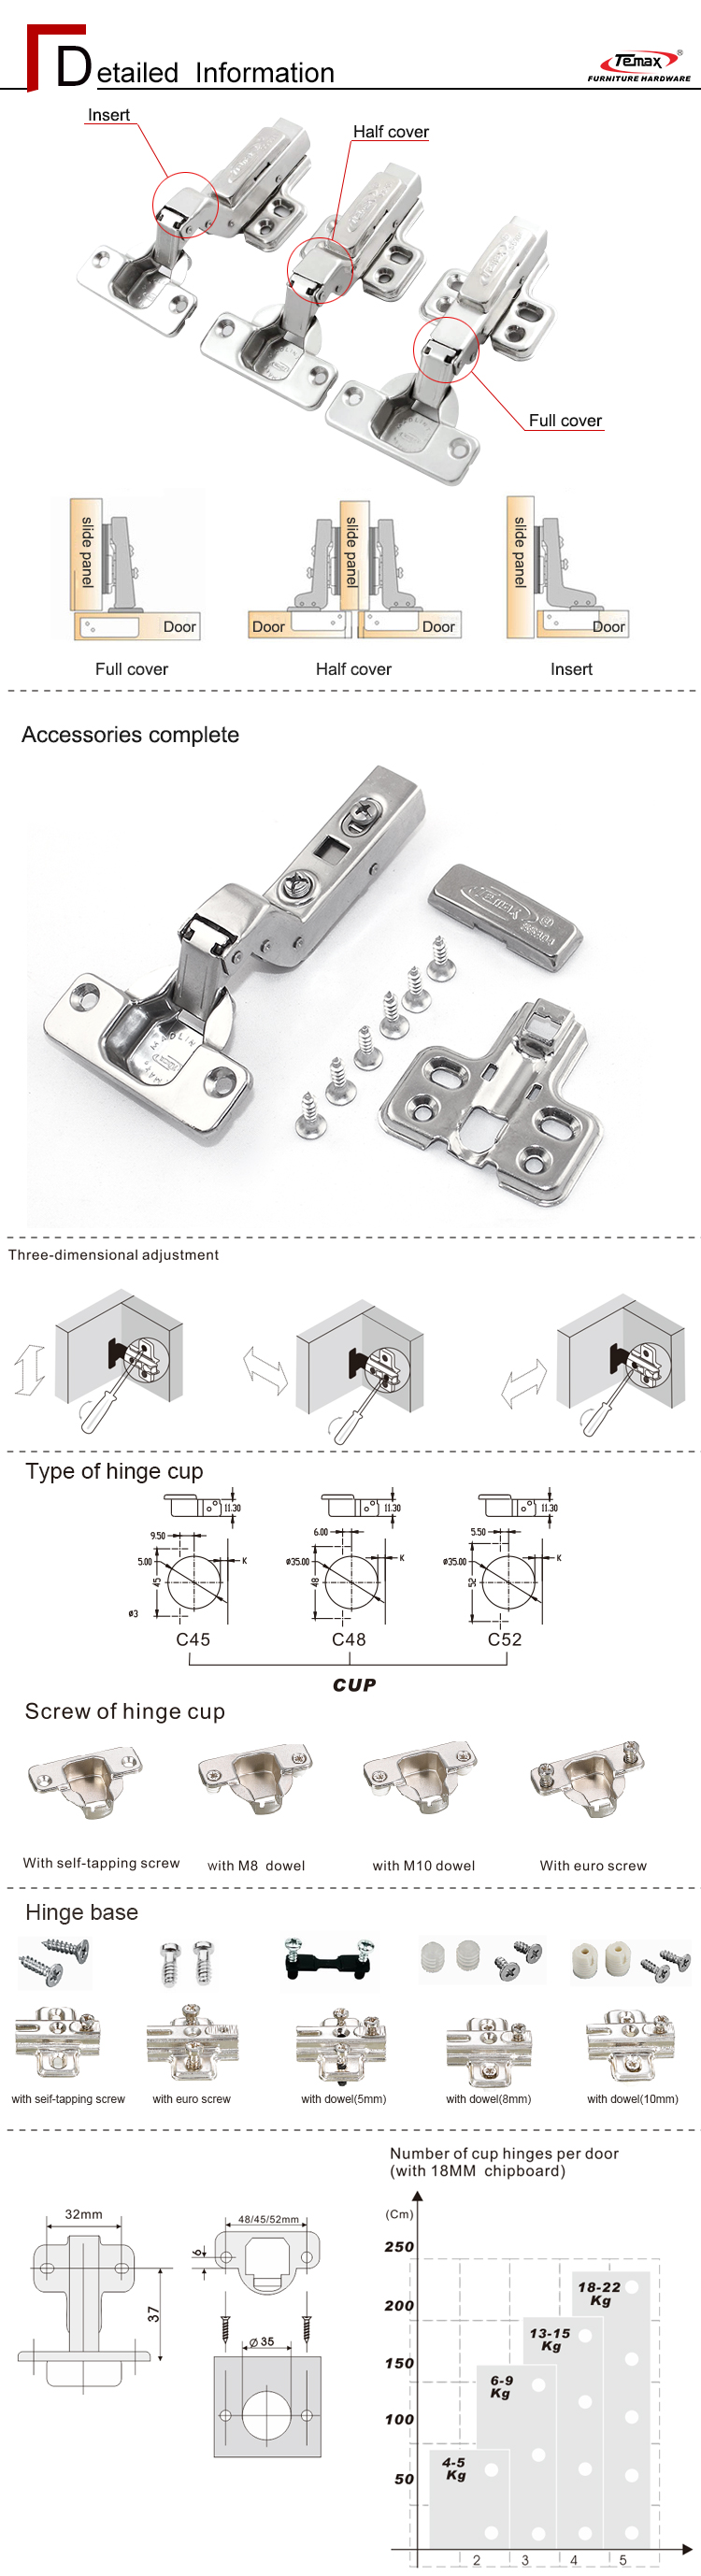 35Mm Soft Closing In Cup Clip-On Hinges Adjustable Two Way Hydraulic Touch Open Soft Close Hinge